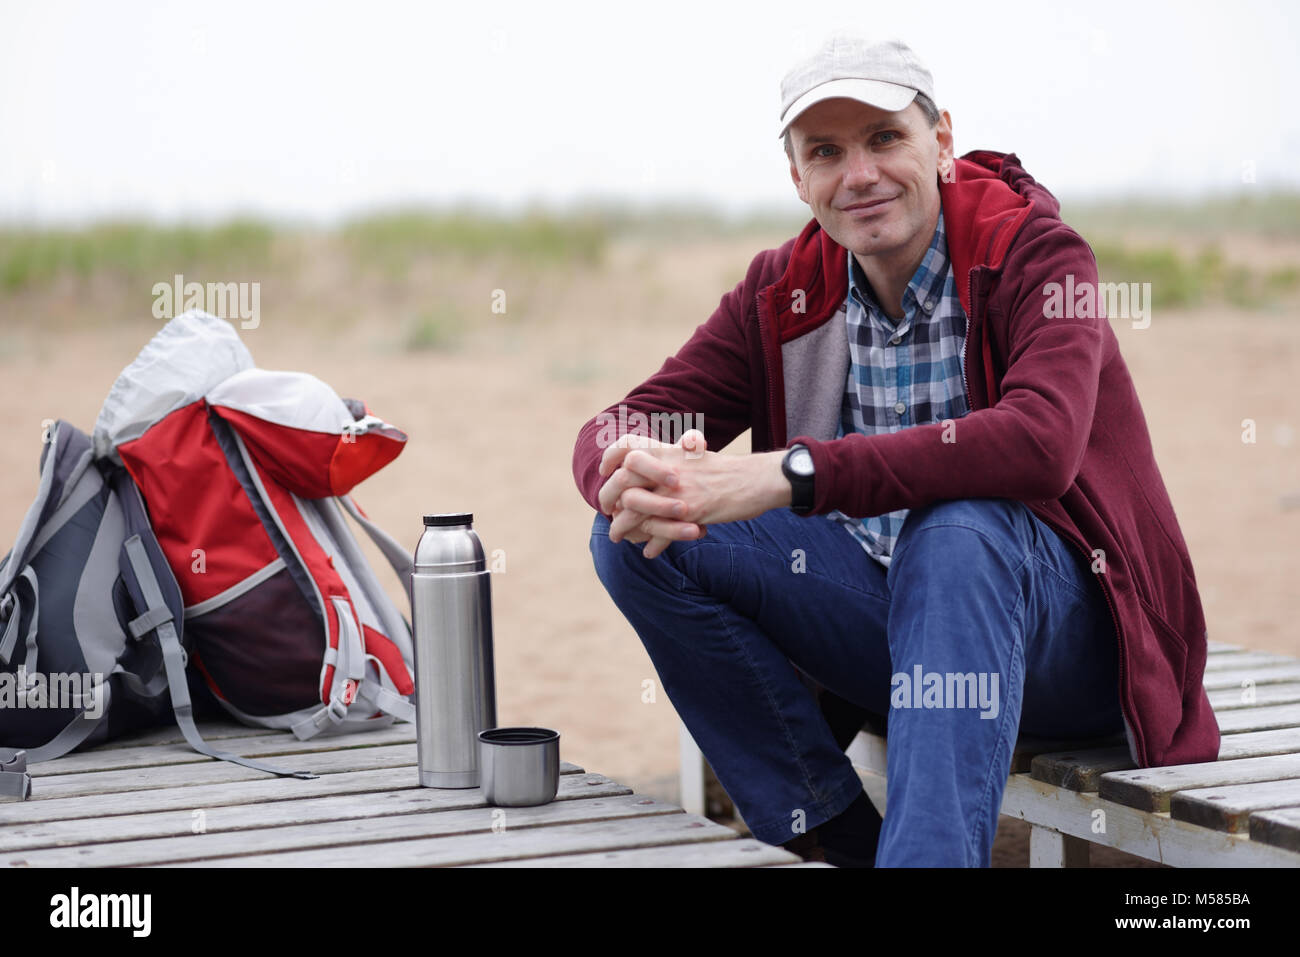 Man with backpack resting on a beach - Stock Image